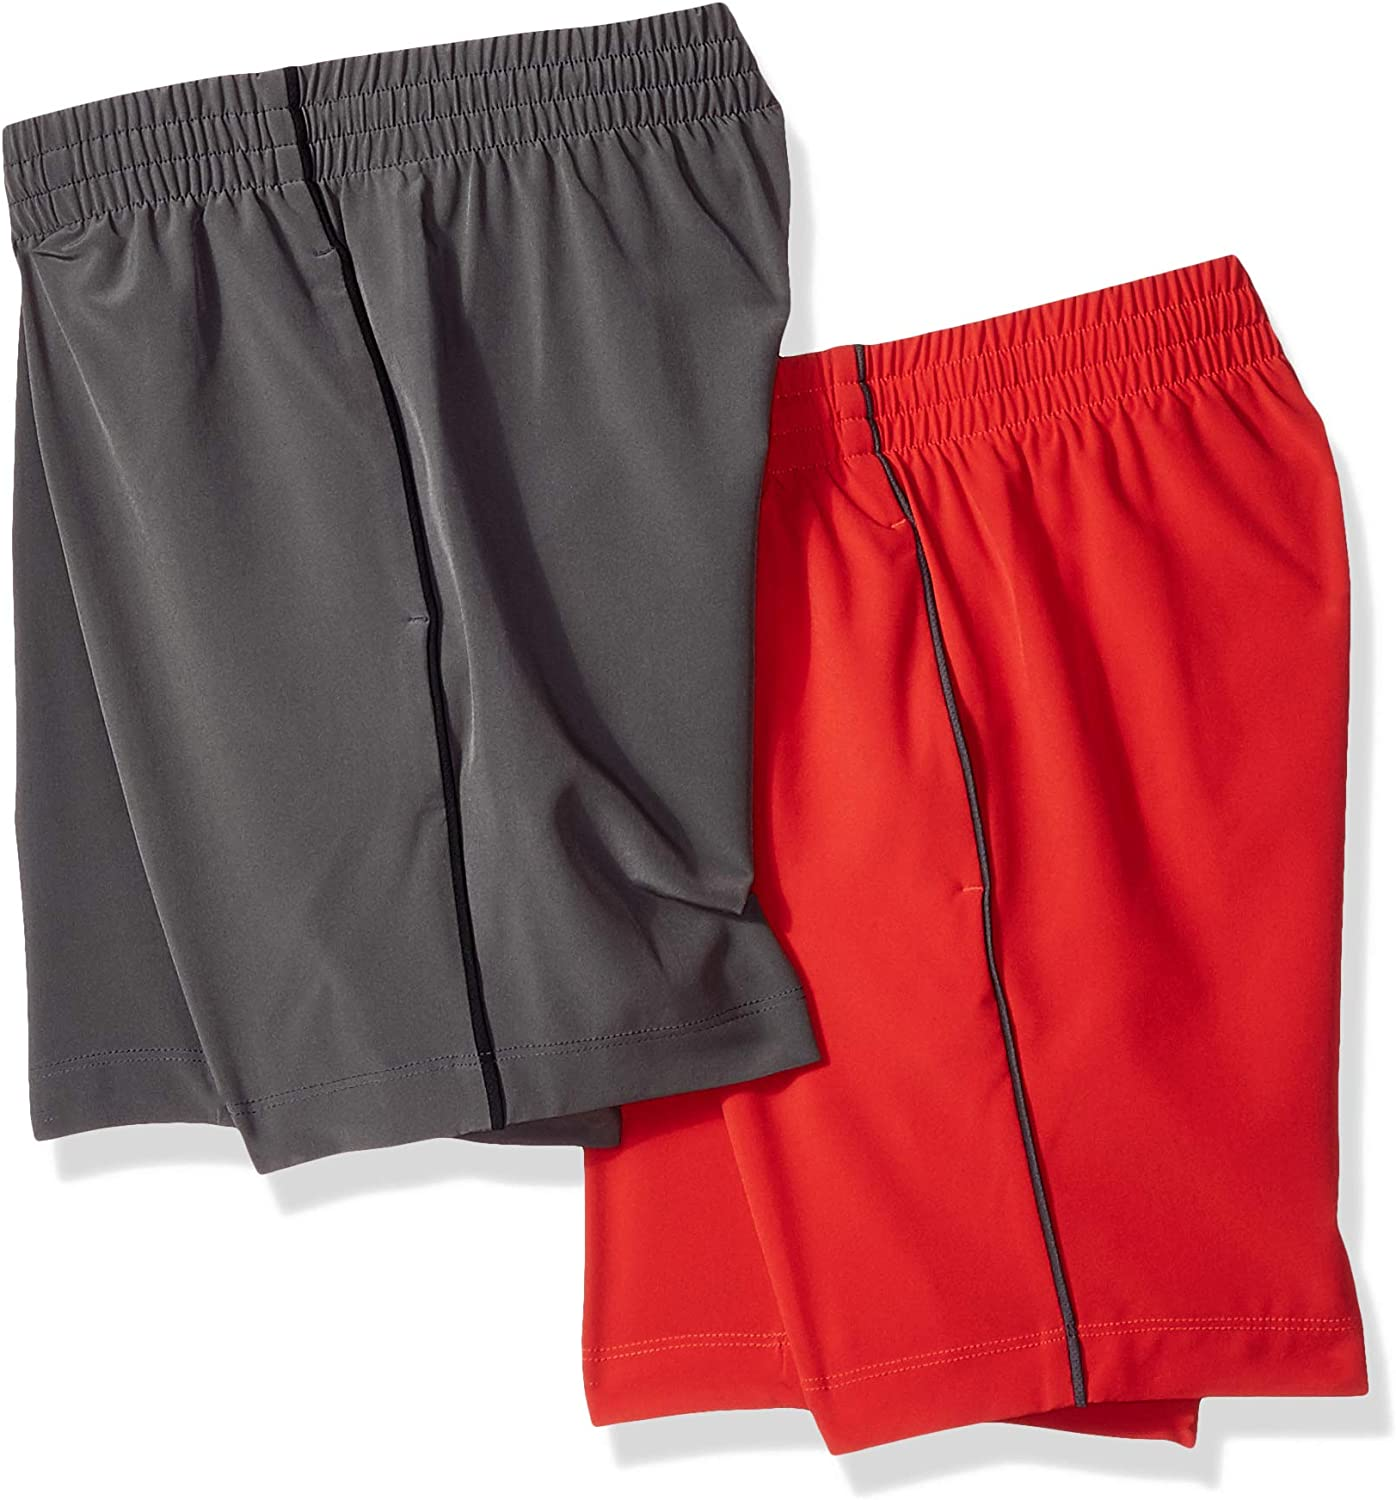 Brand Spotted Zebra Boys Toddler /& Kids 2-Pack Active Woven Shorts